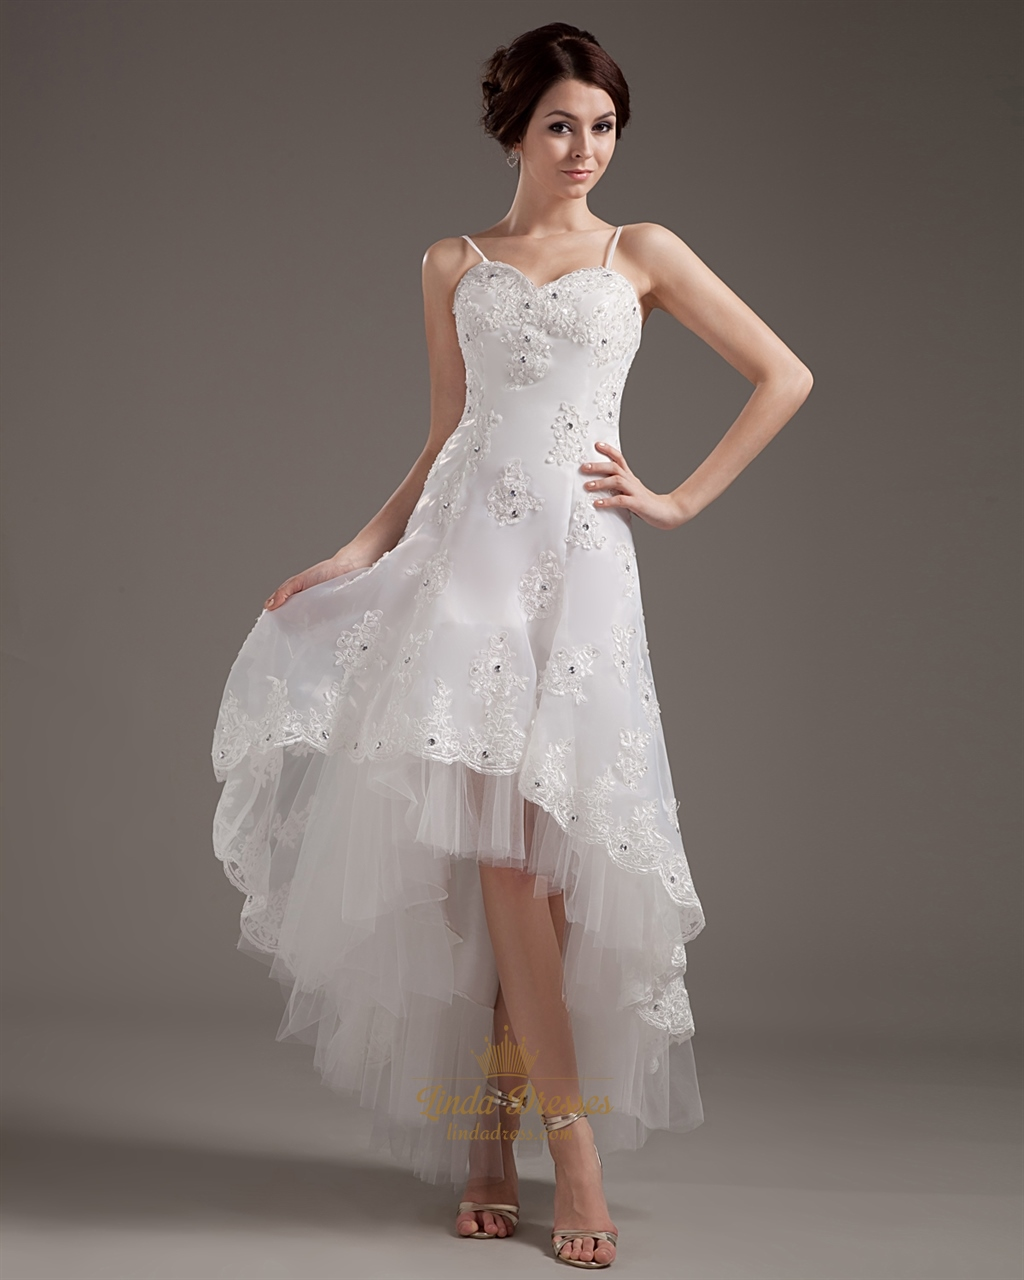 Wedding Dresses: Ivory Organza Lace Applique Spaghetti Strap High Low